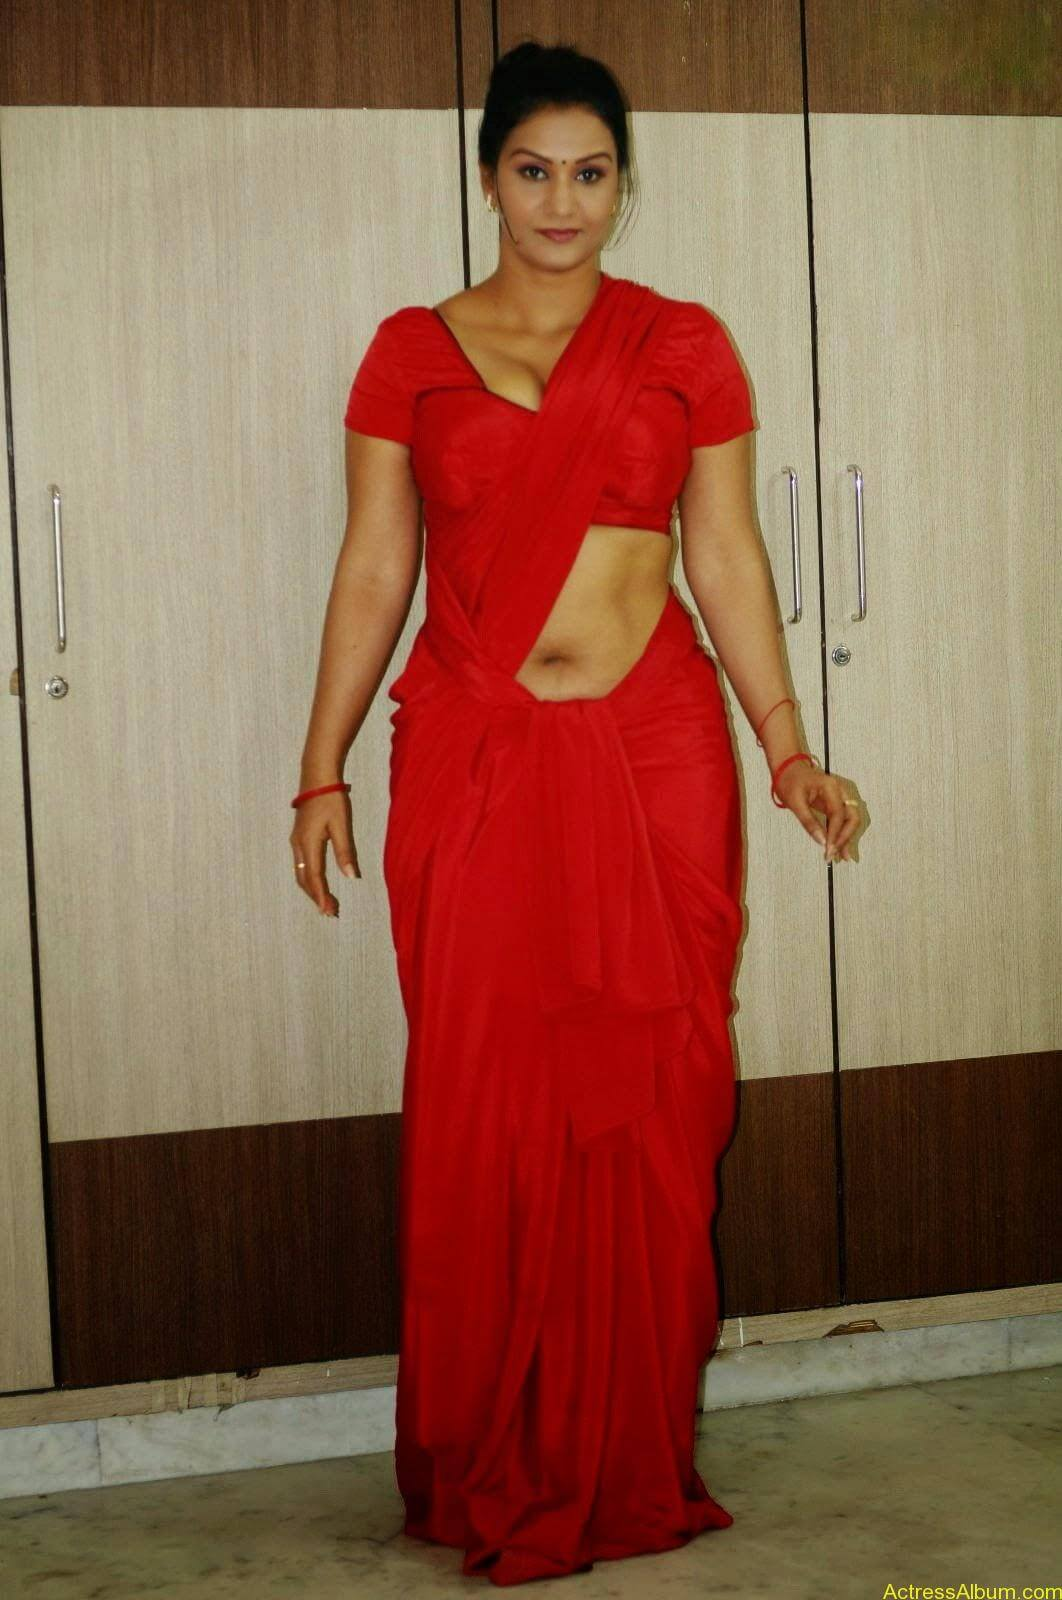 ACTRESS APOORVA VERY HOT IN RED SAREE PHOTO COLLECTION 6